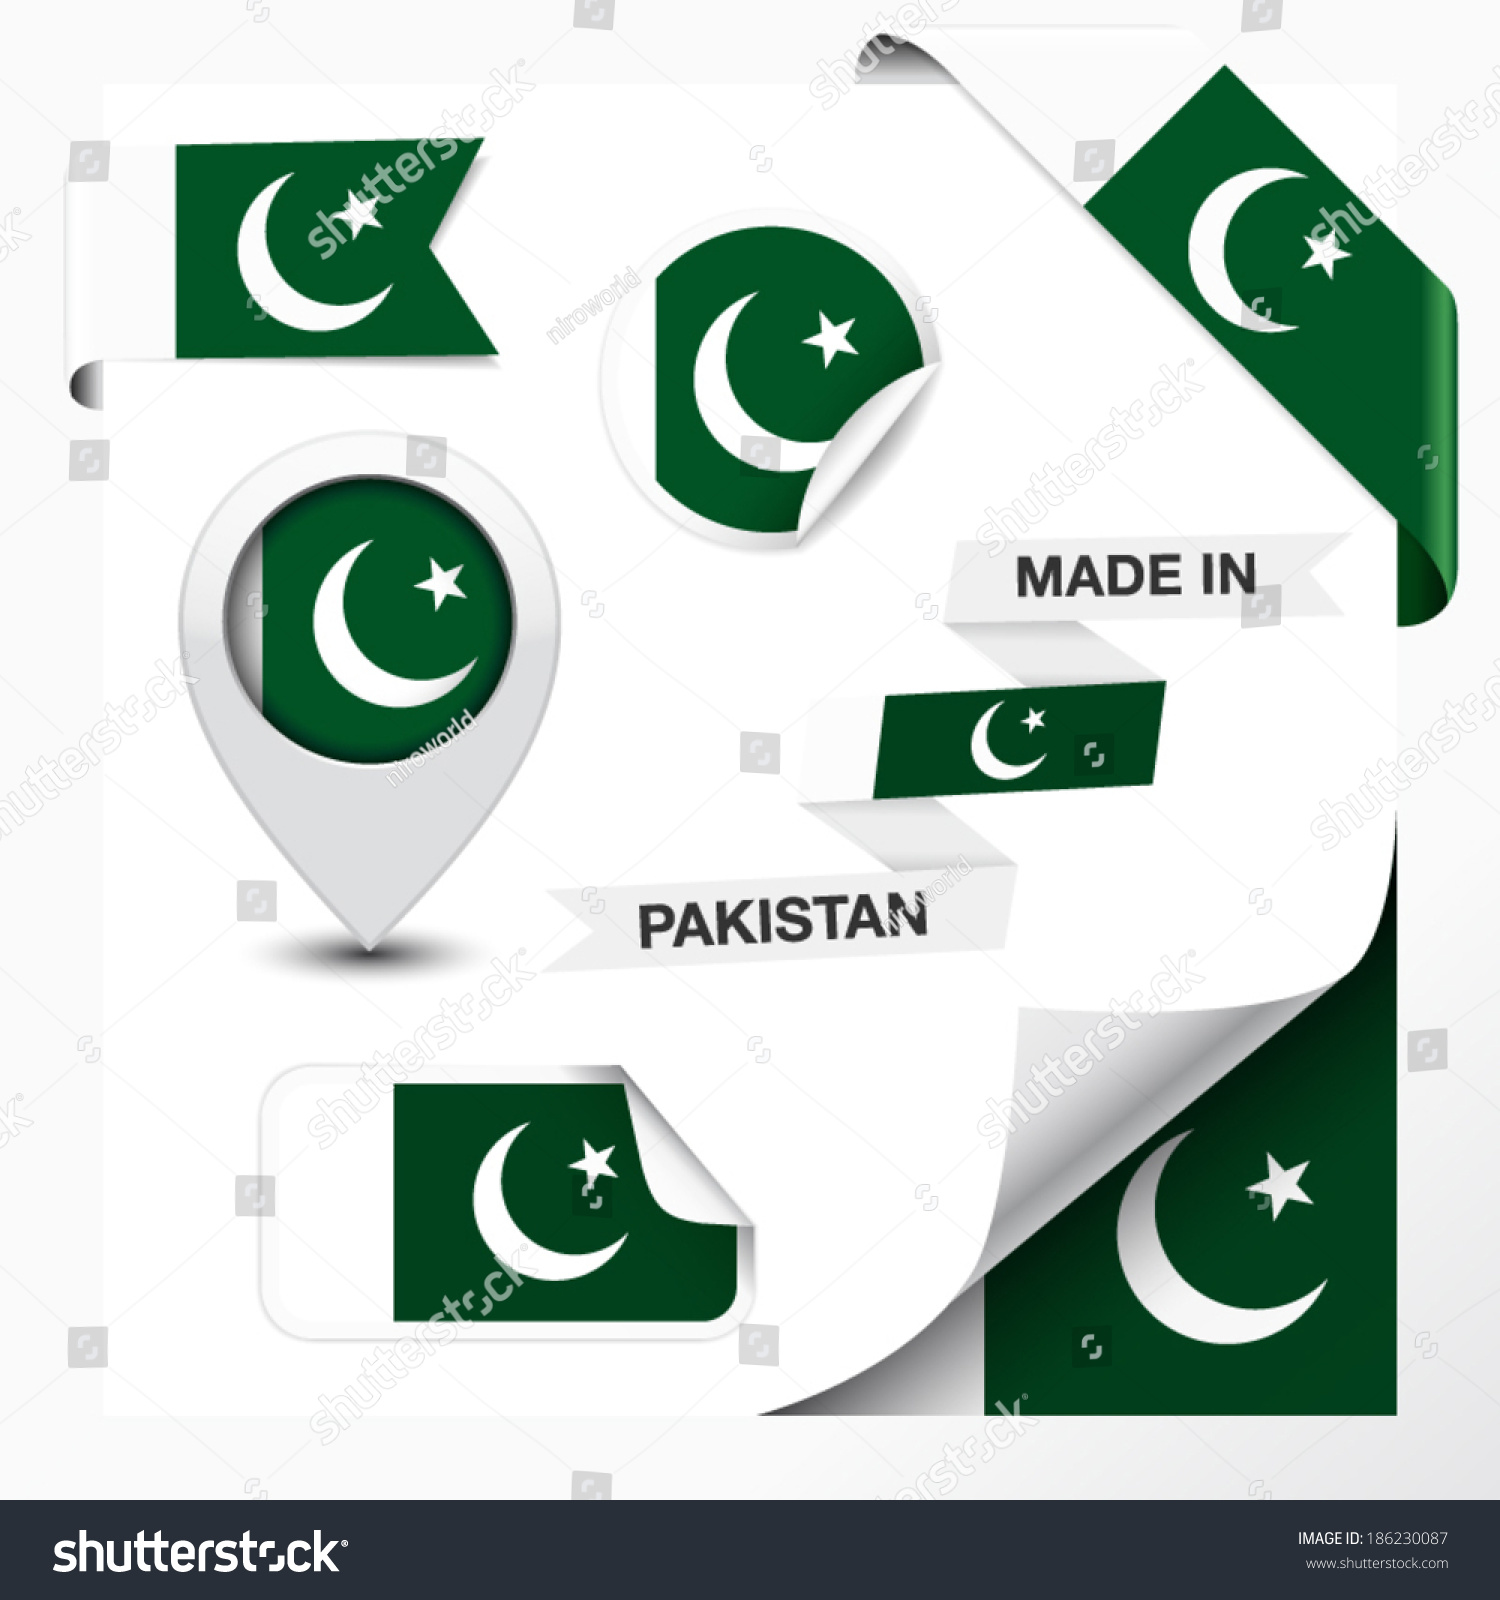 Pakistani Stickers